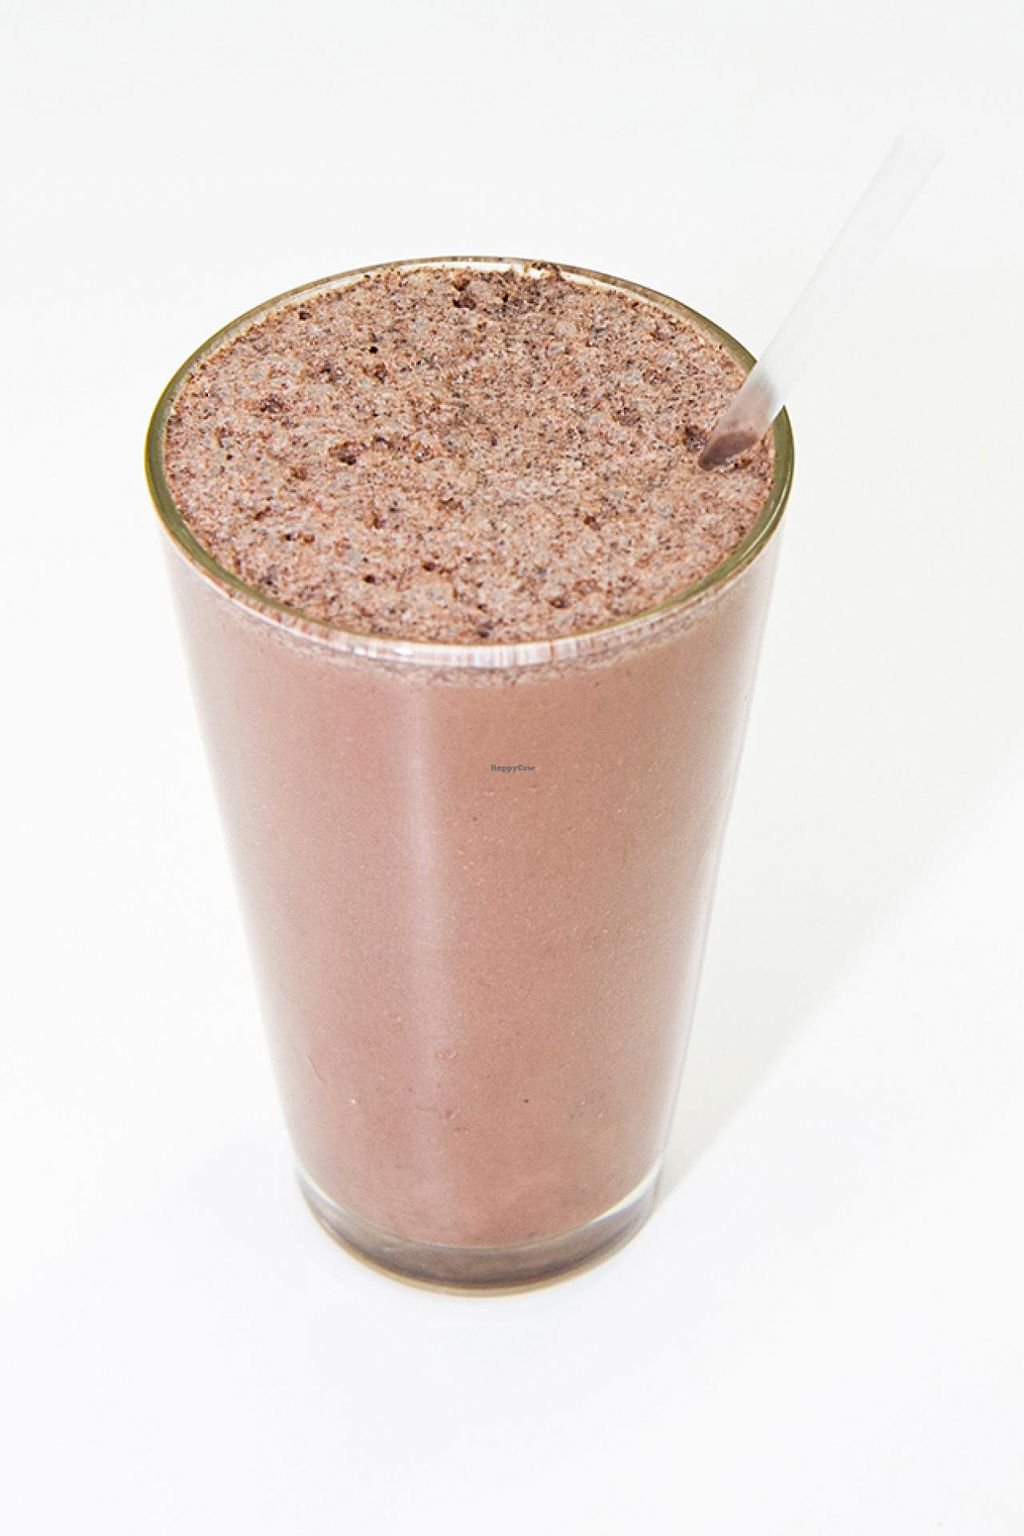 """Photo of Smile of the Beyond  by <a href=""""/members/profile/northstar7"""">northstar7</a> <br/>Smoothies for every taste are a specialty at the Smile of the Beyond in Jamaica, NY <br/> December 15, 2014  - <a href='/contact/abuse/image/3306/88025'>Report</a>"""